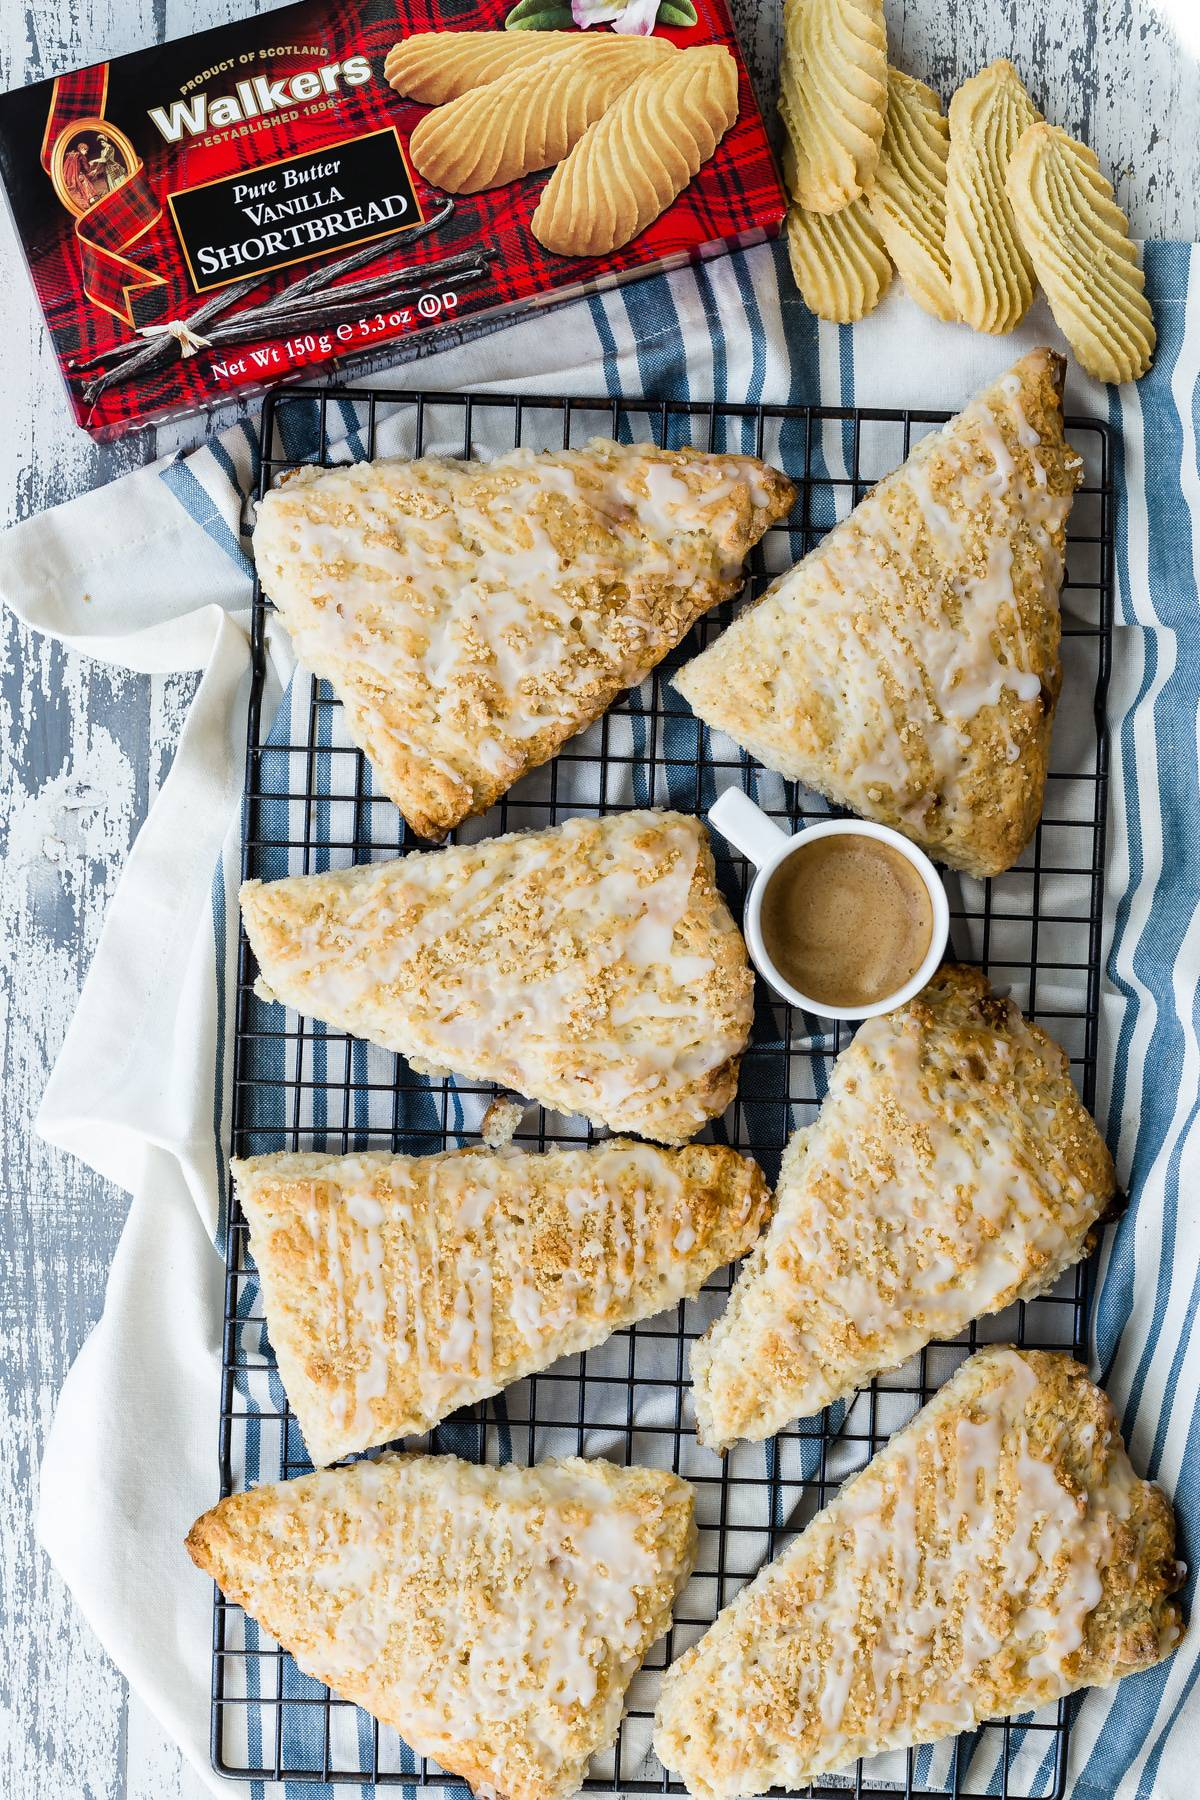 Lemon Shortbread Scones with Lemon Icing